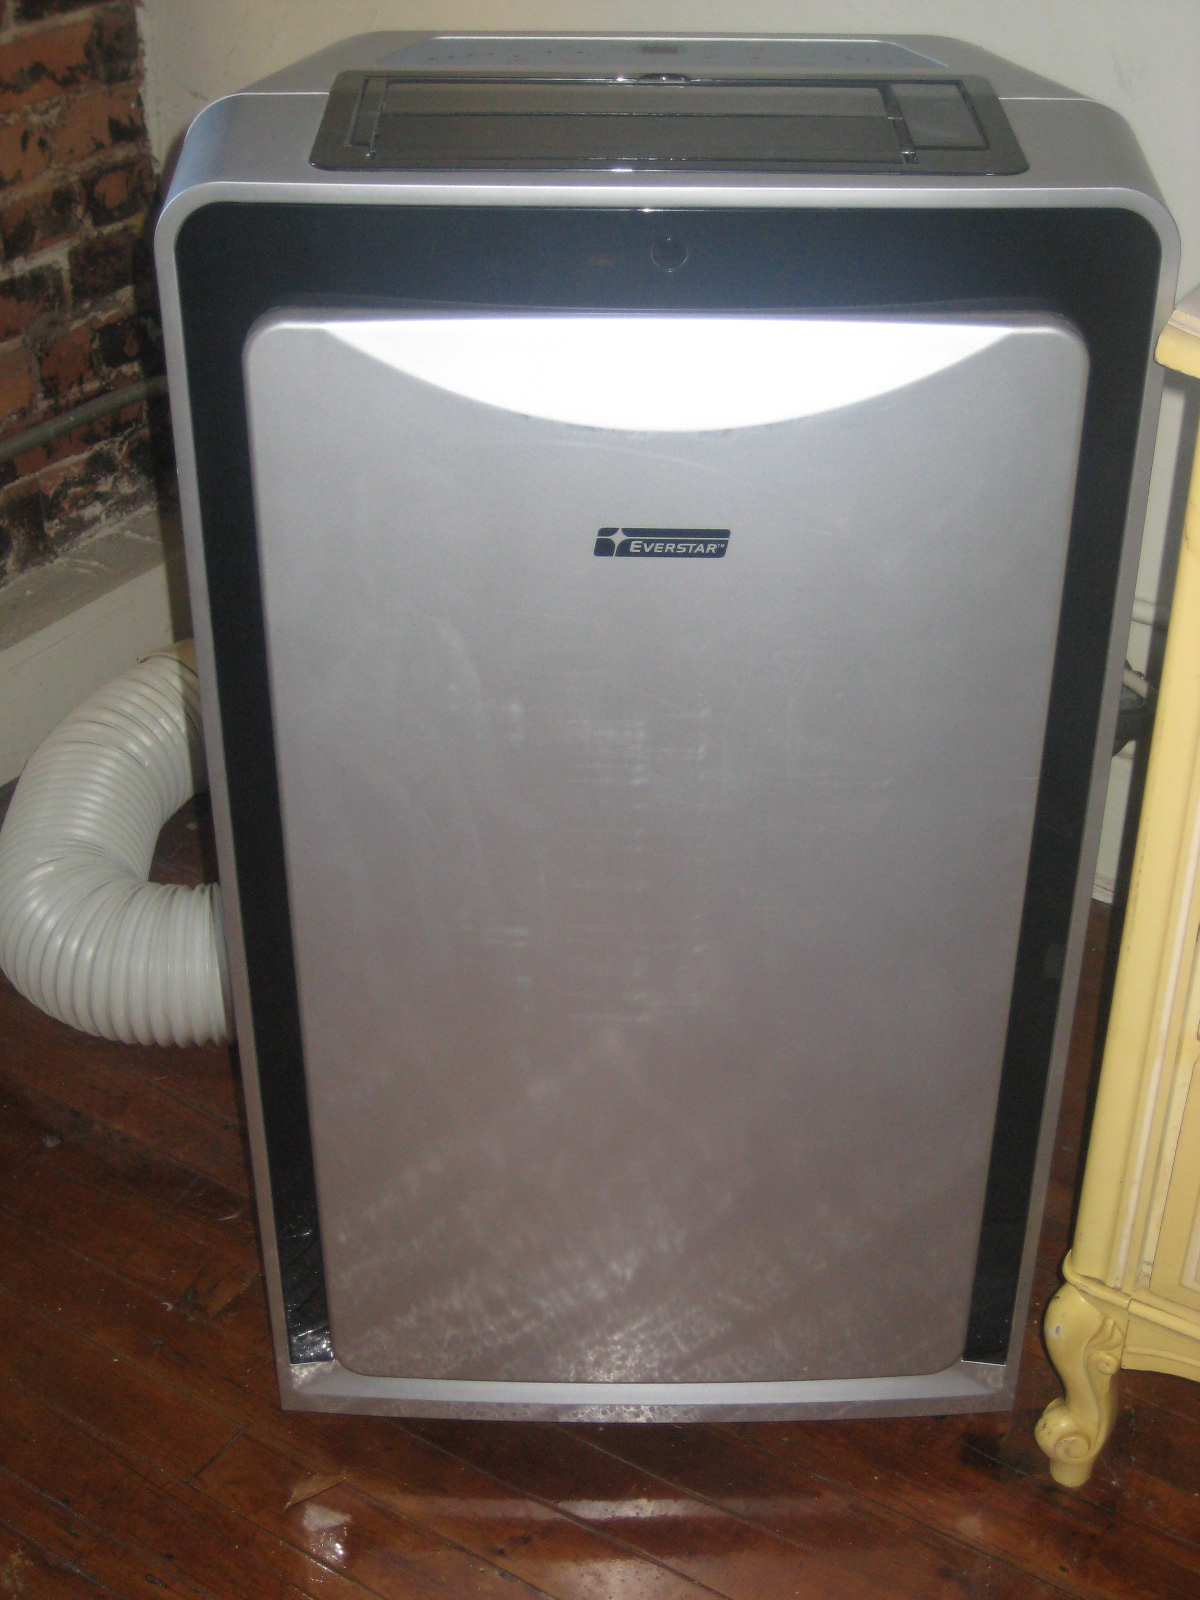 Everstar Portable Air Conditioner Repair Photos. EVERSTAR PORTABLE AIR  CONDITIONER MPM1 10CR BB6 MANUAL